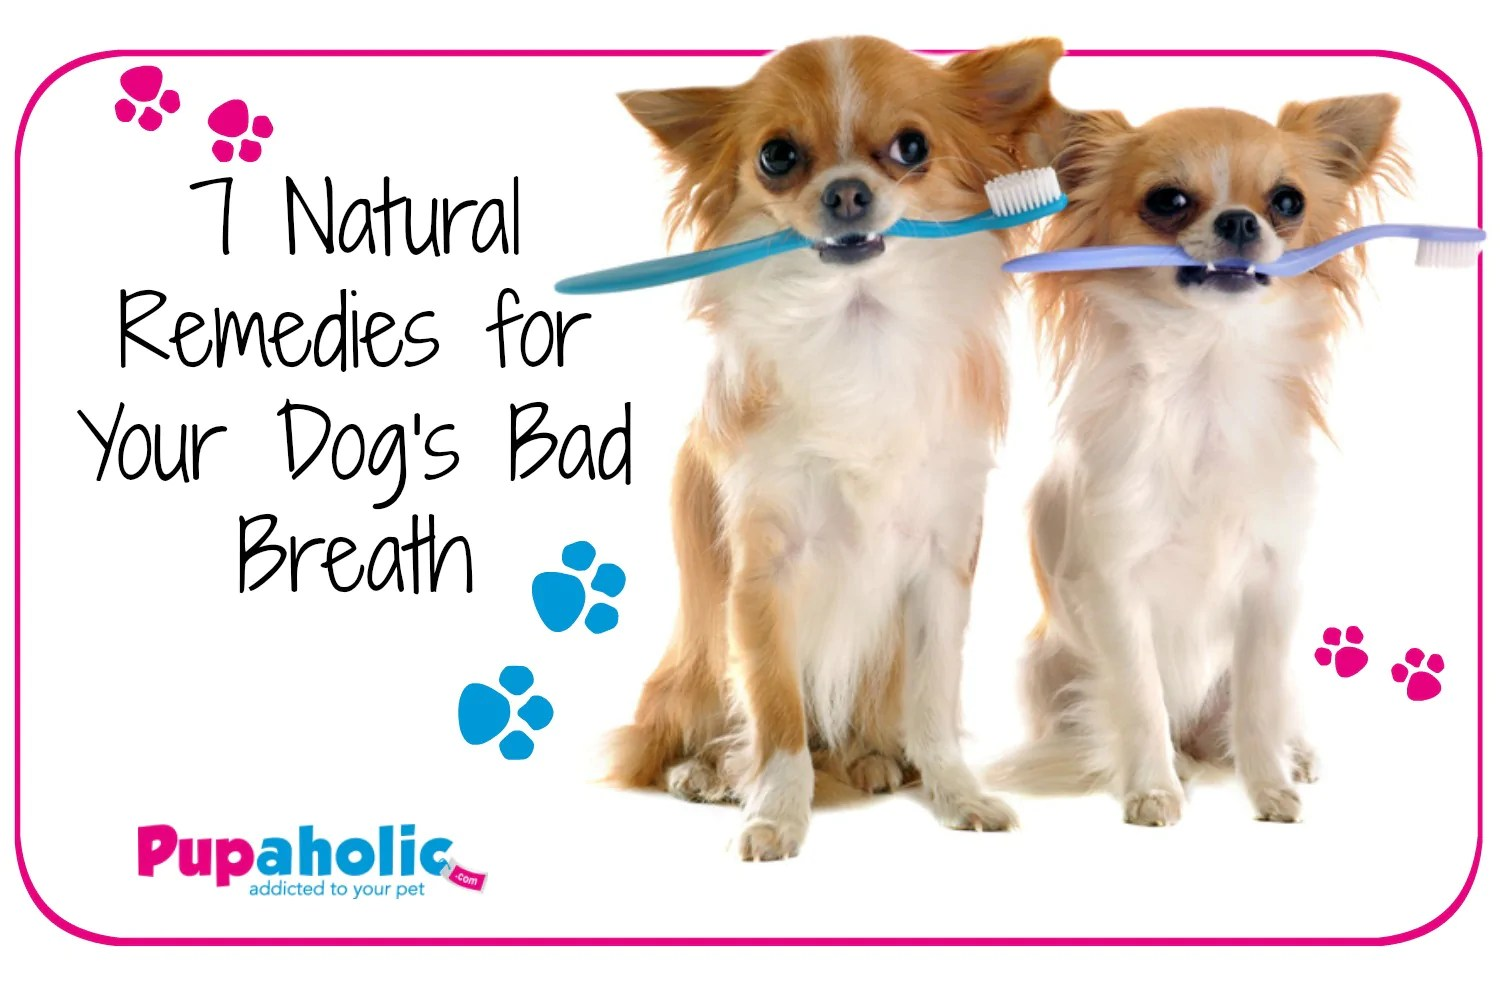 Lummy Your Bad Breath Remedies Remedies Your Bad Breath Bad Dog Breath Remedy Bad Dog Breath Fix bark post Bad Dog Breath